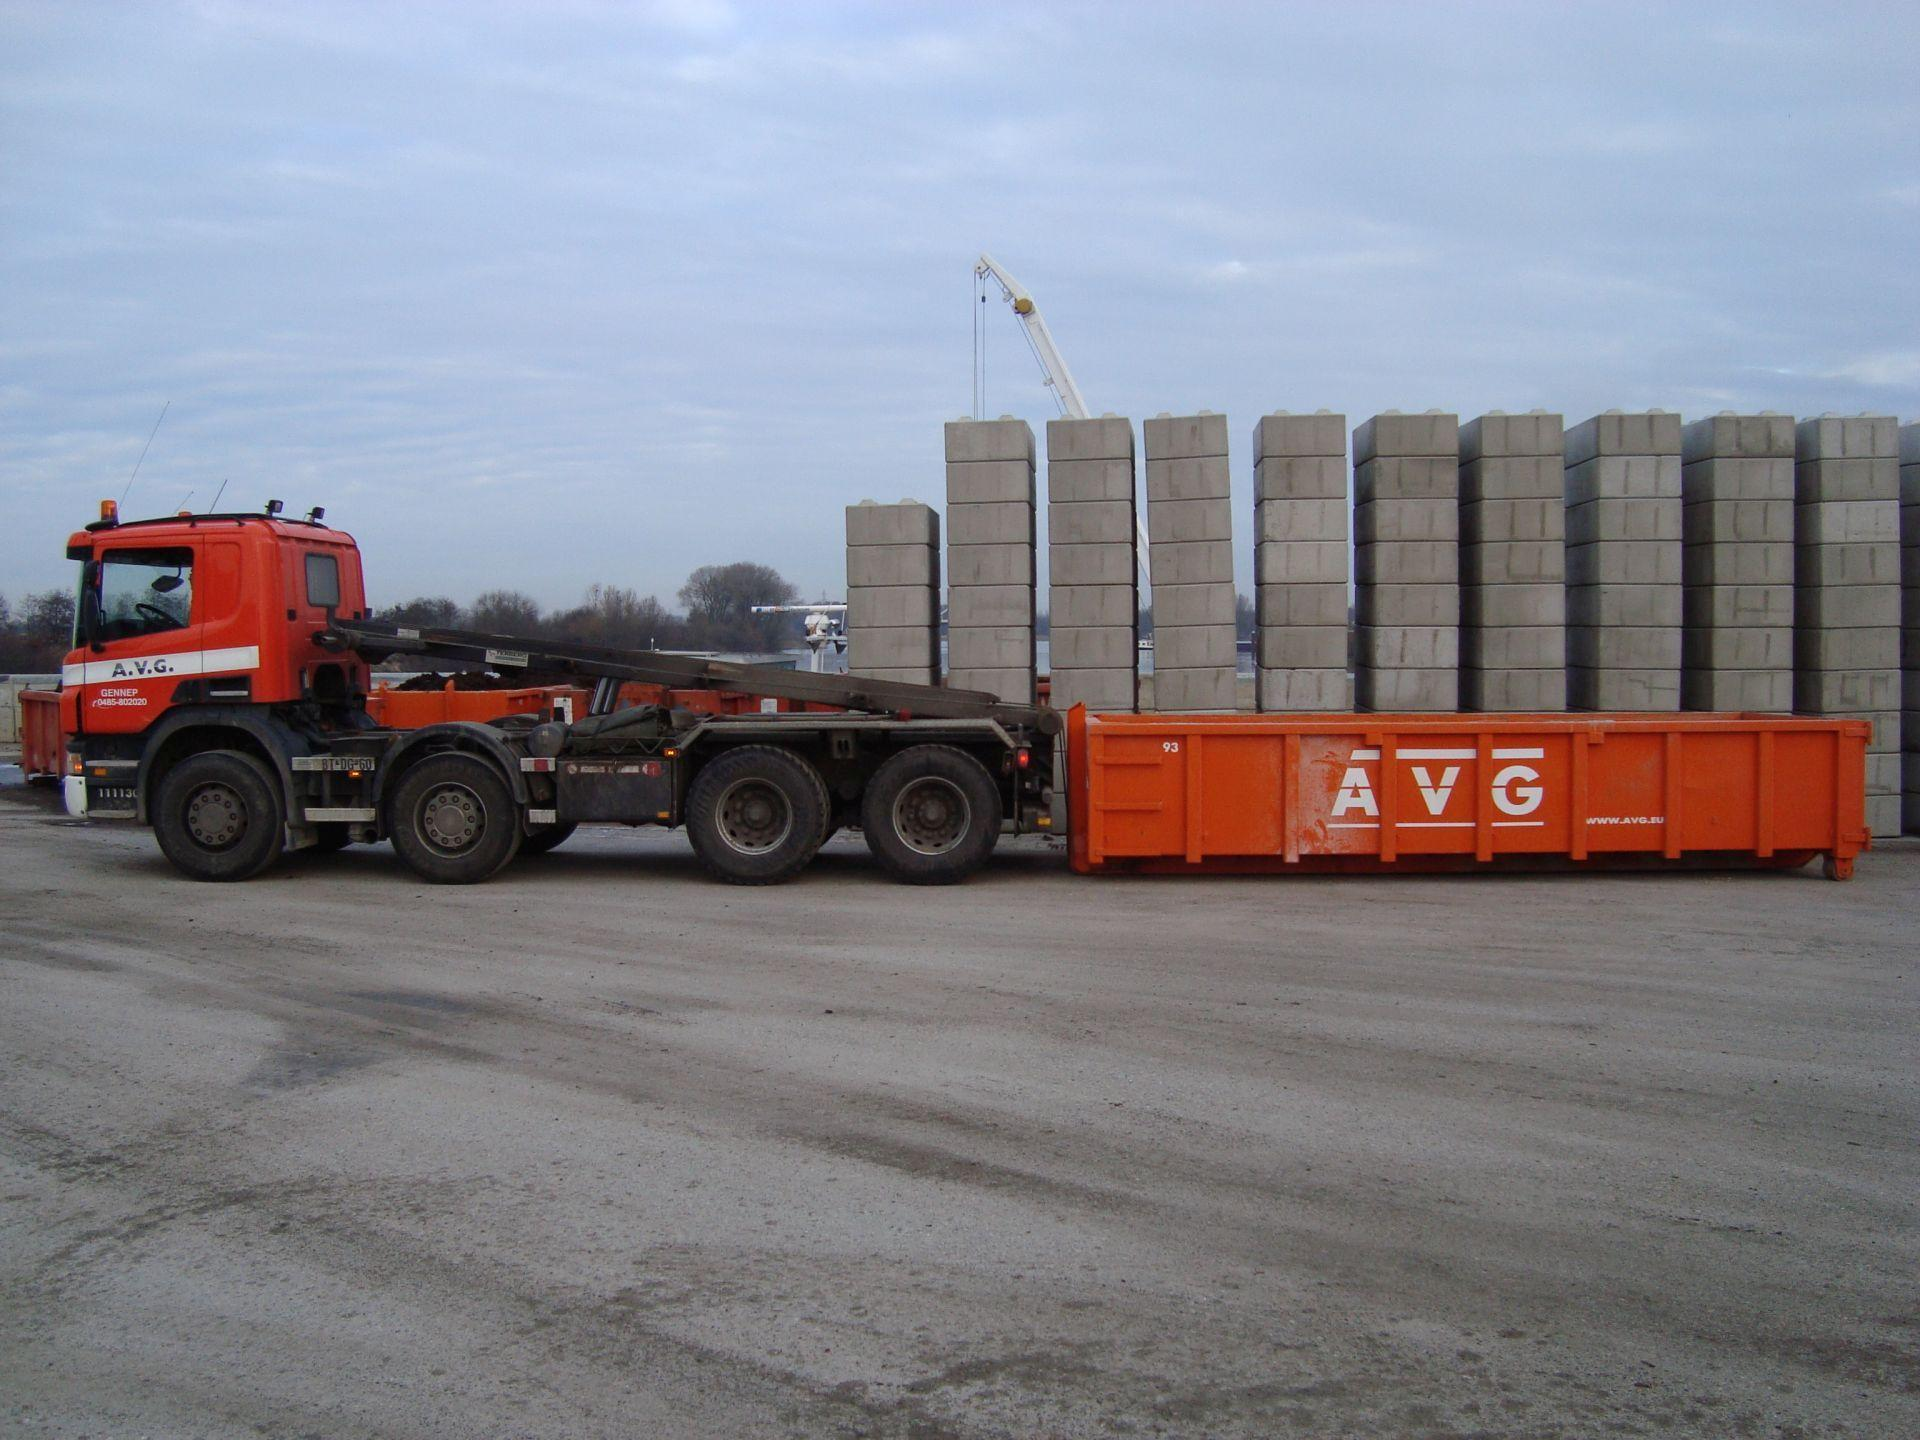 lange-container-10-avg-bouwstoffen